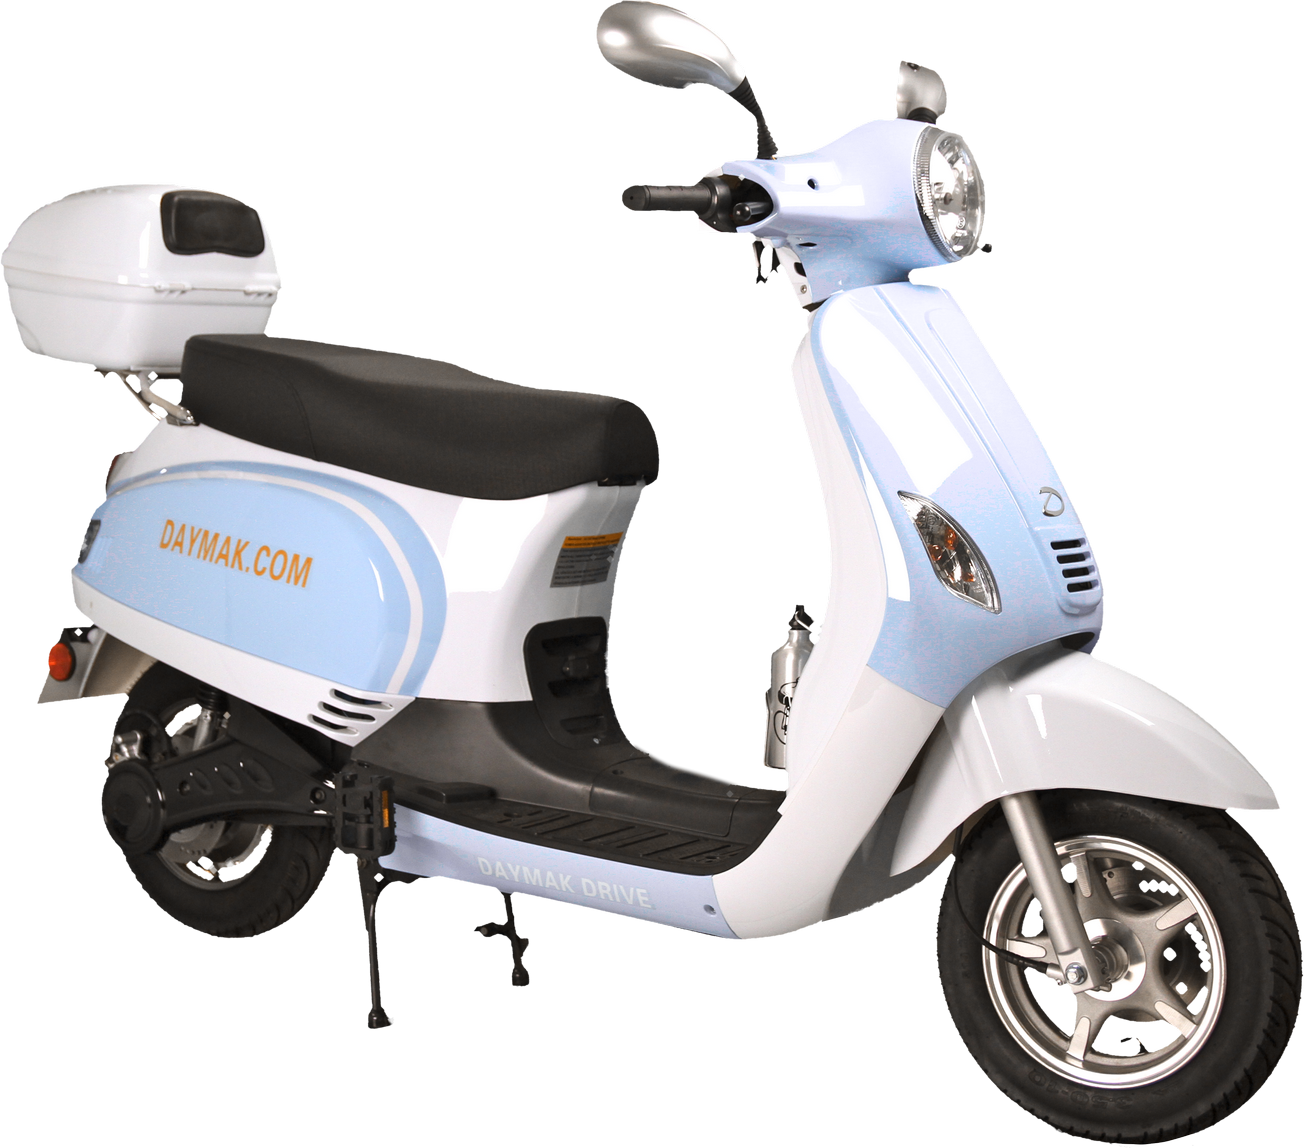 Scooter clipart transparent. Png image purepng free